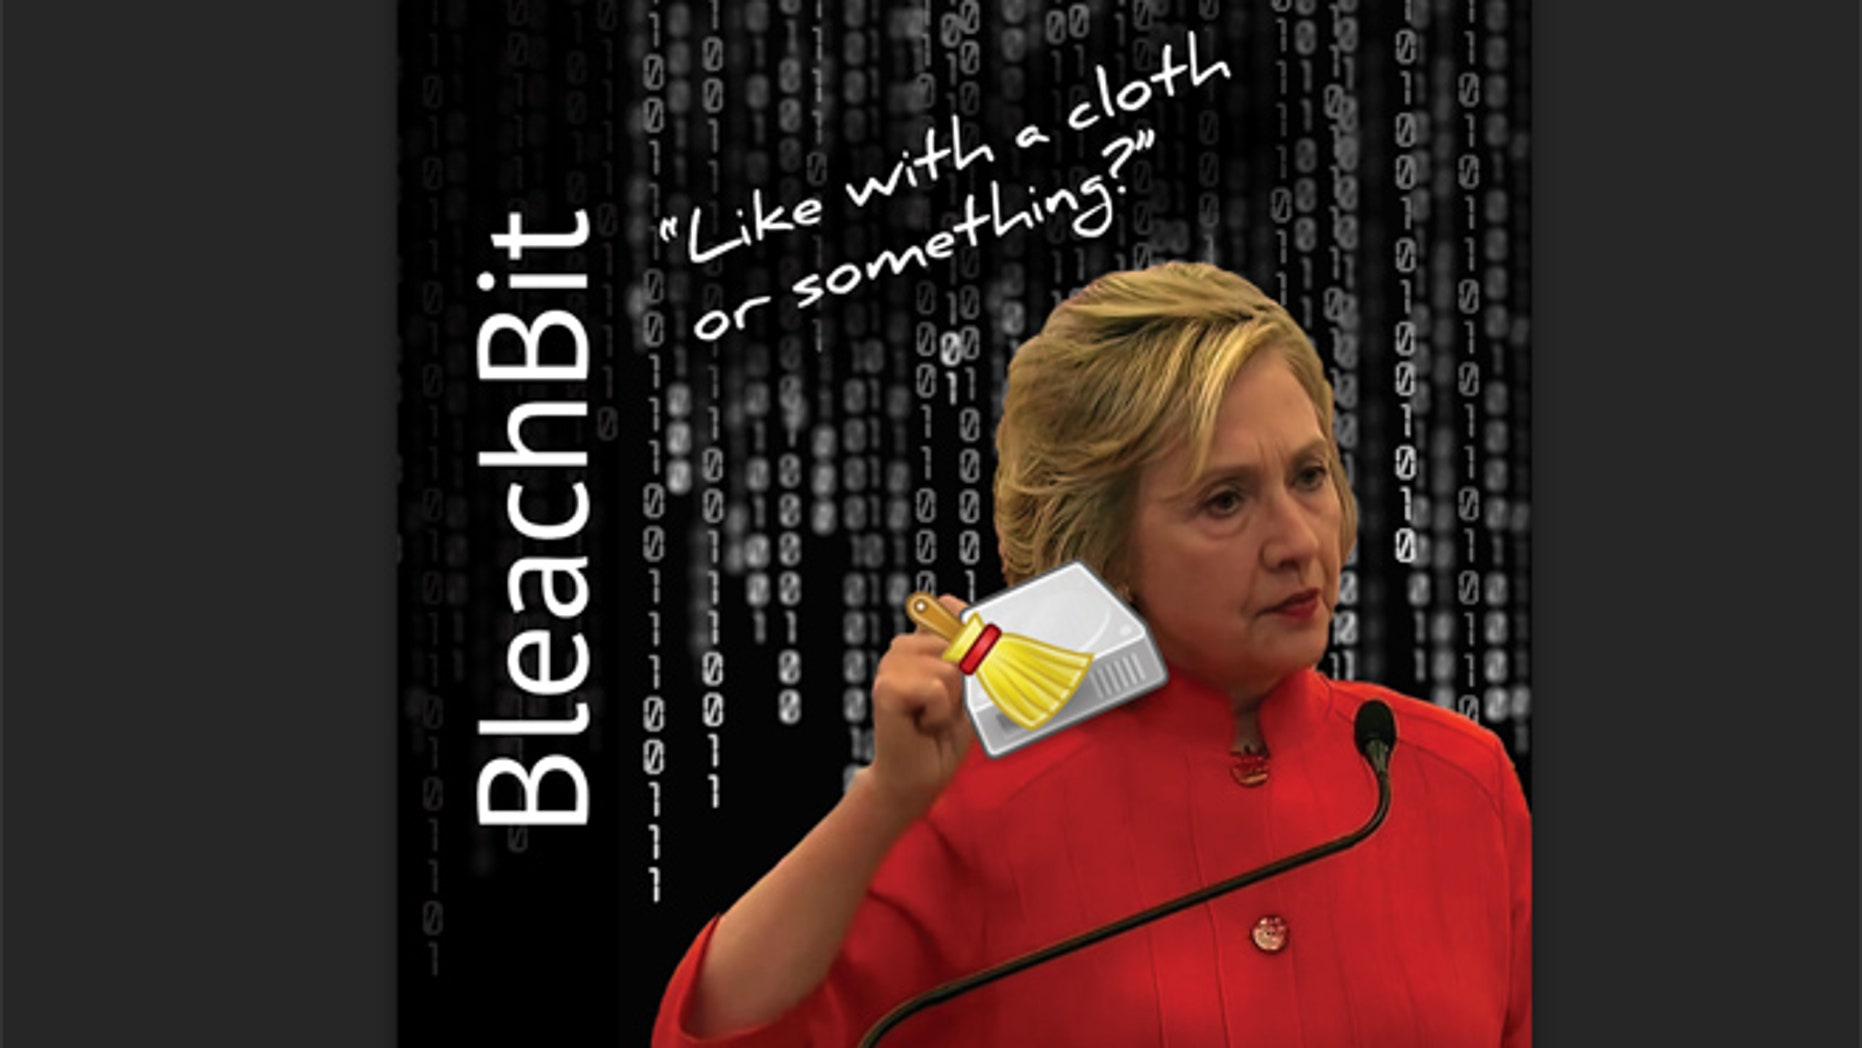 """The """"Cloth or Something"""" sold by BleachBit."""